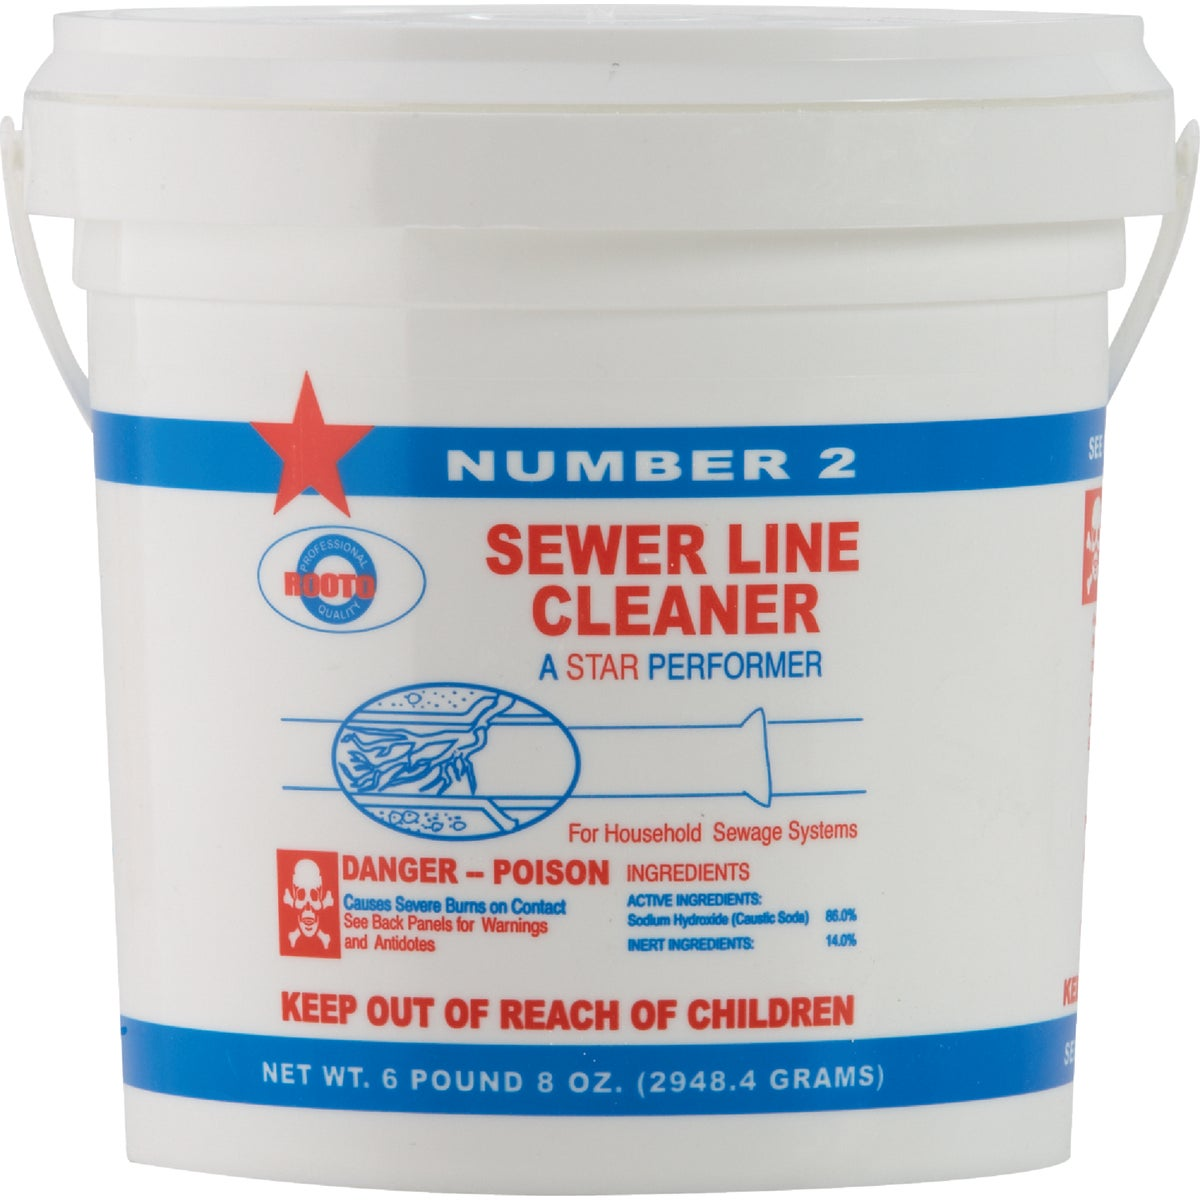 6-1/2LB SEWER CLEANER - 1010 by Rooto Corp